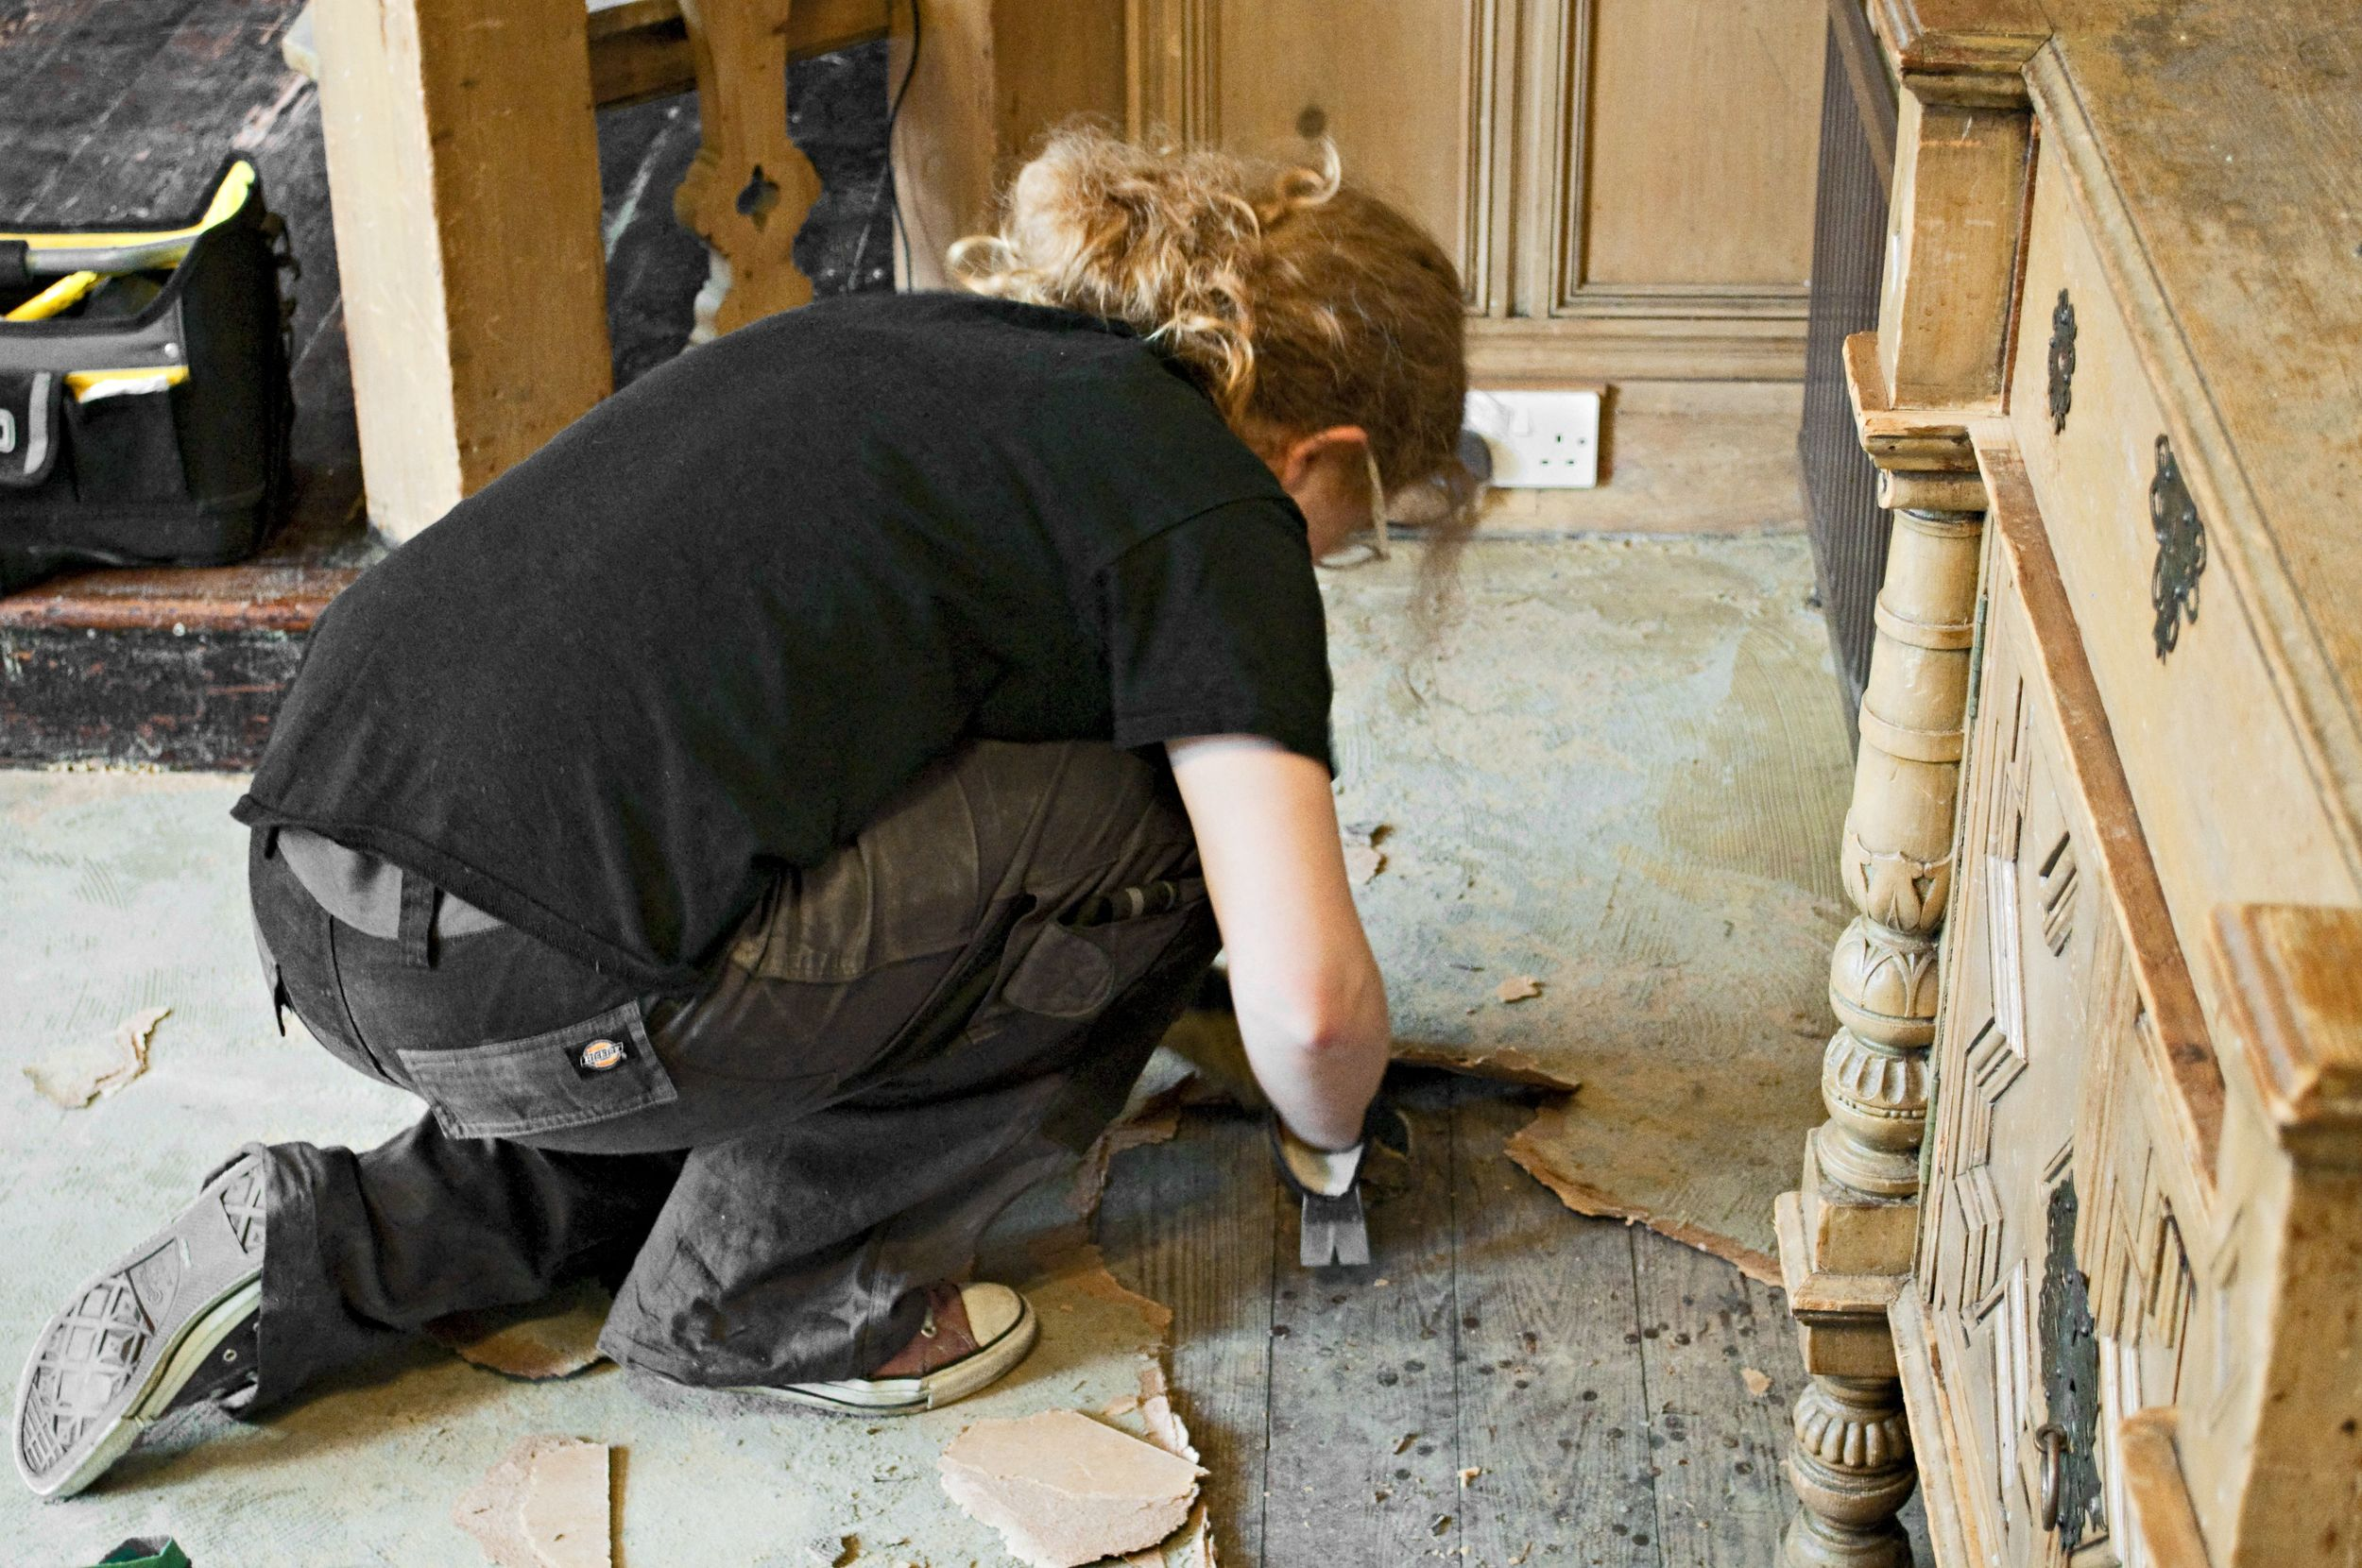 Uncovering the dining room floor